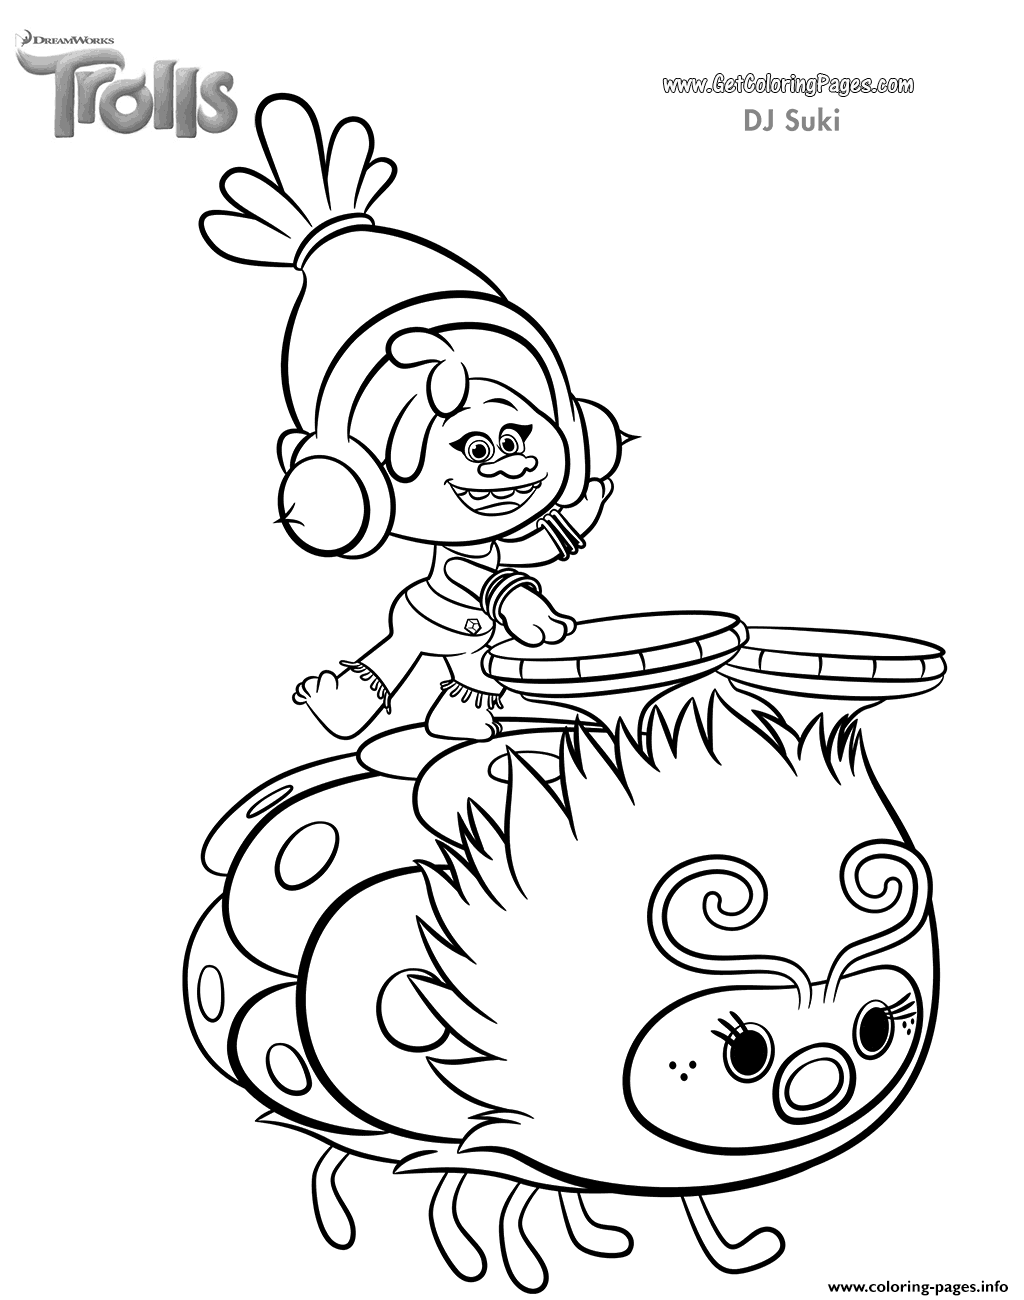 Christmas Coloring Pages Trolls With Print DJ Suki Of Movie Mixed Stuff 2